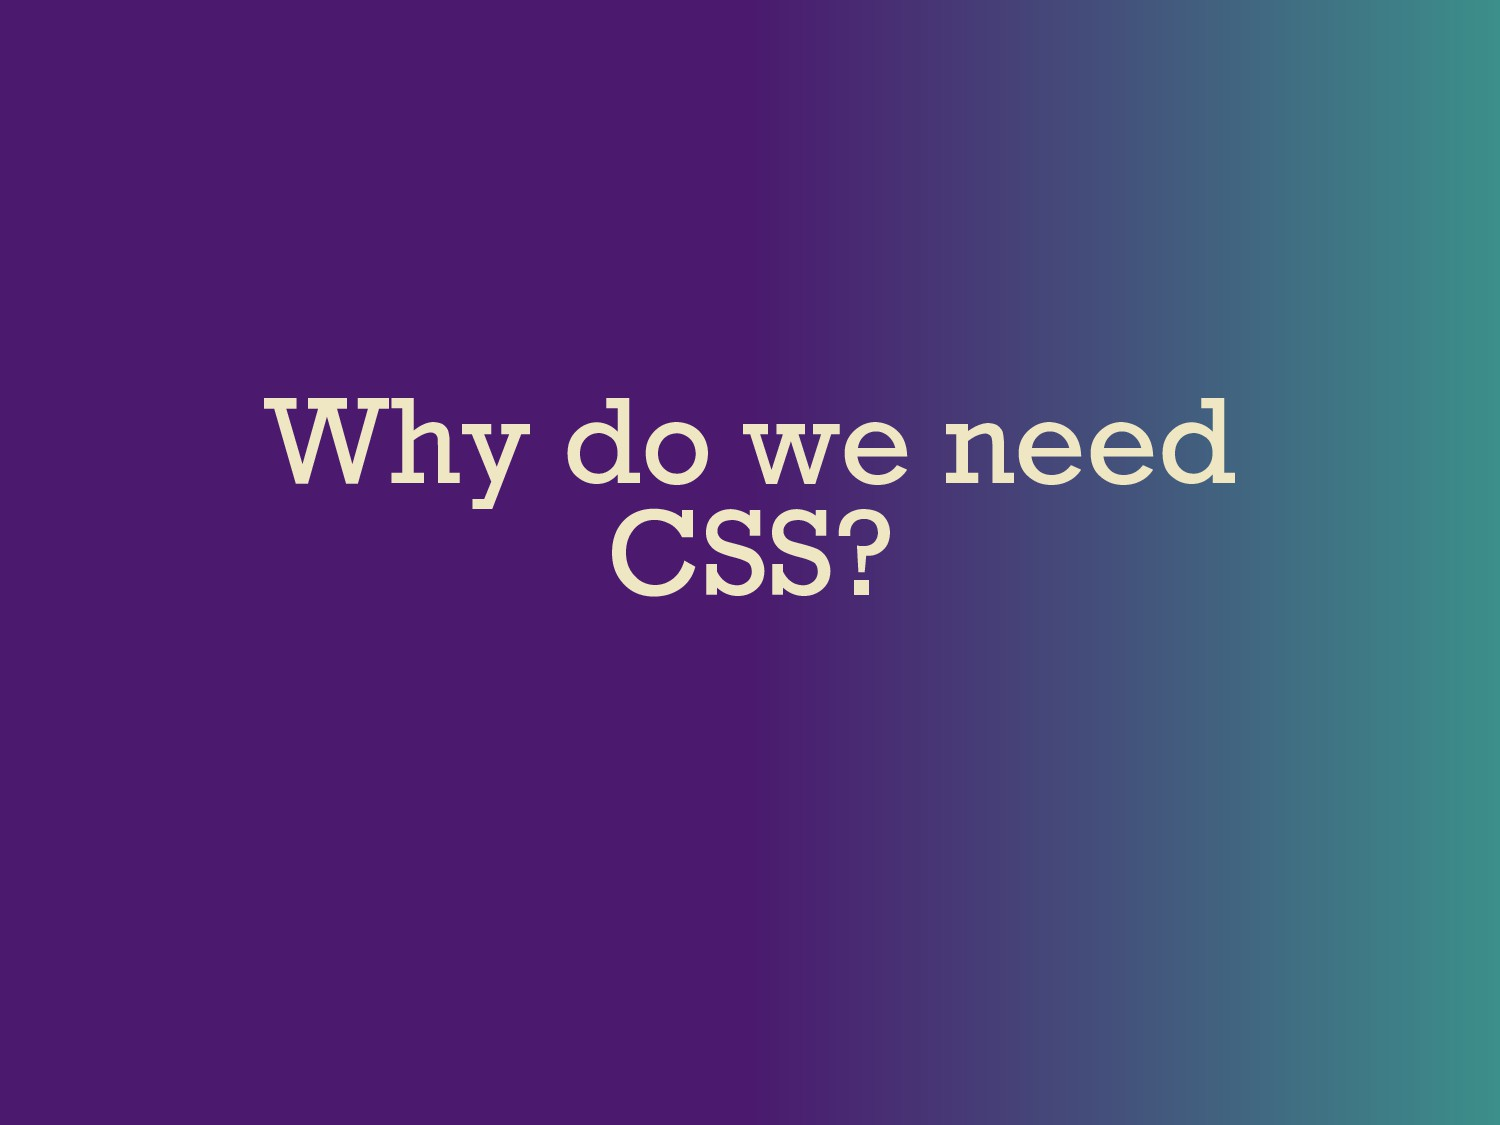 Why do we need CSS?